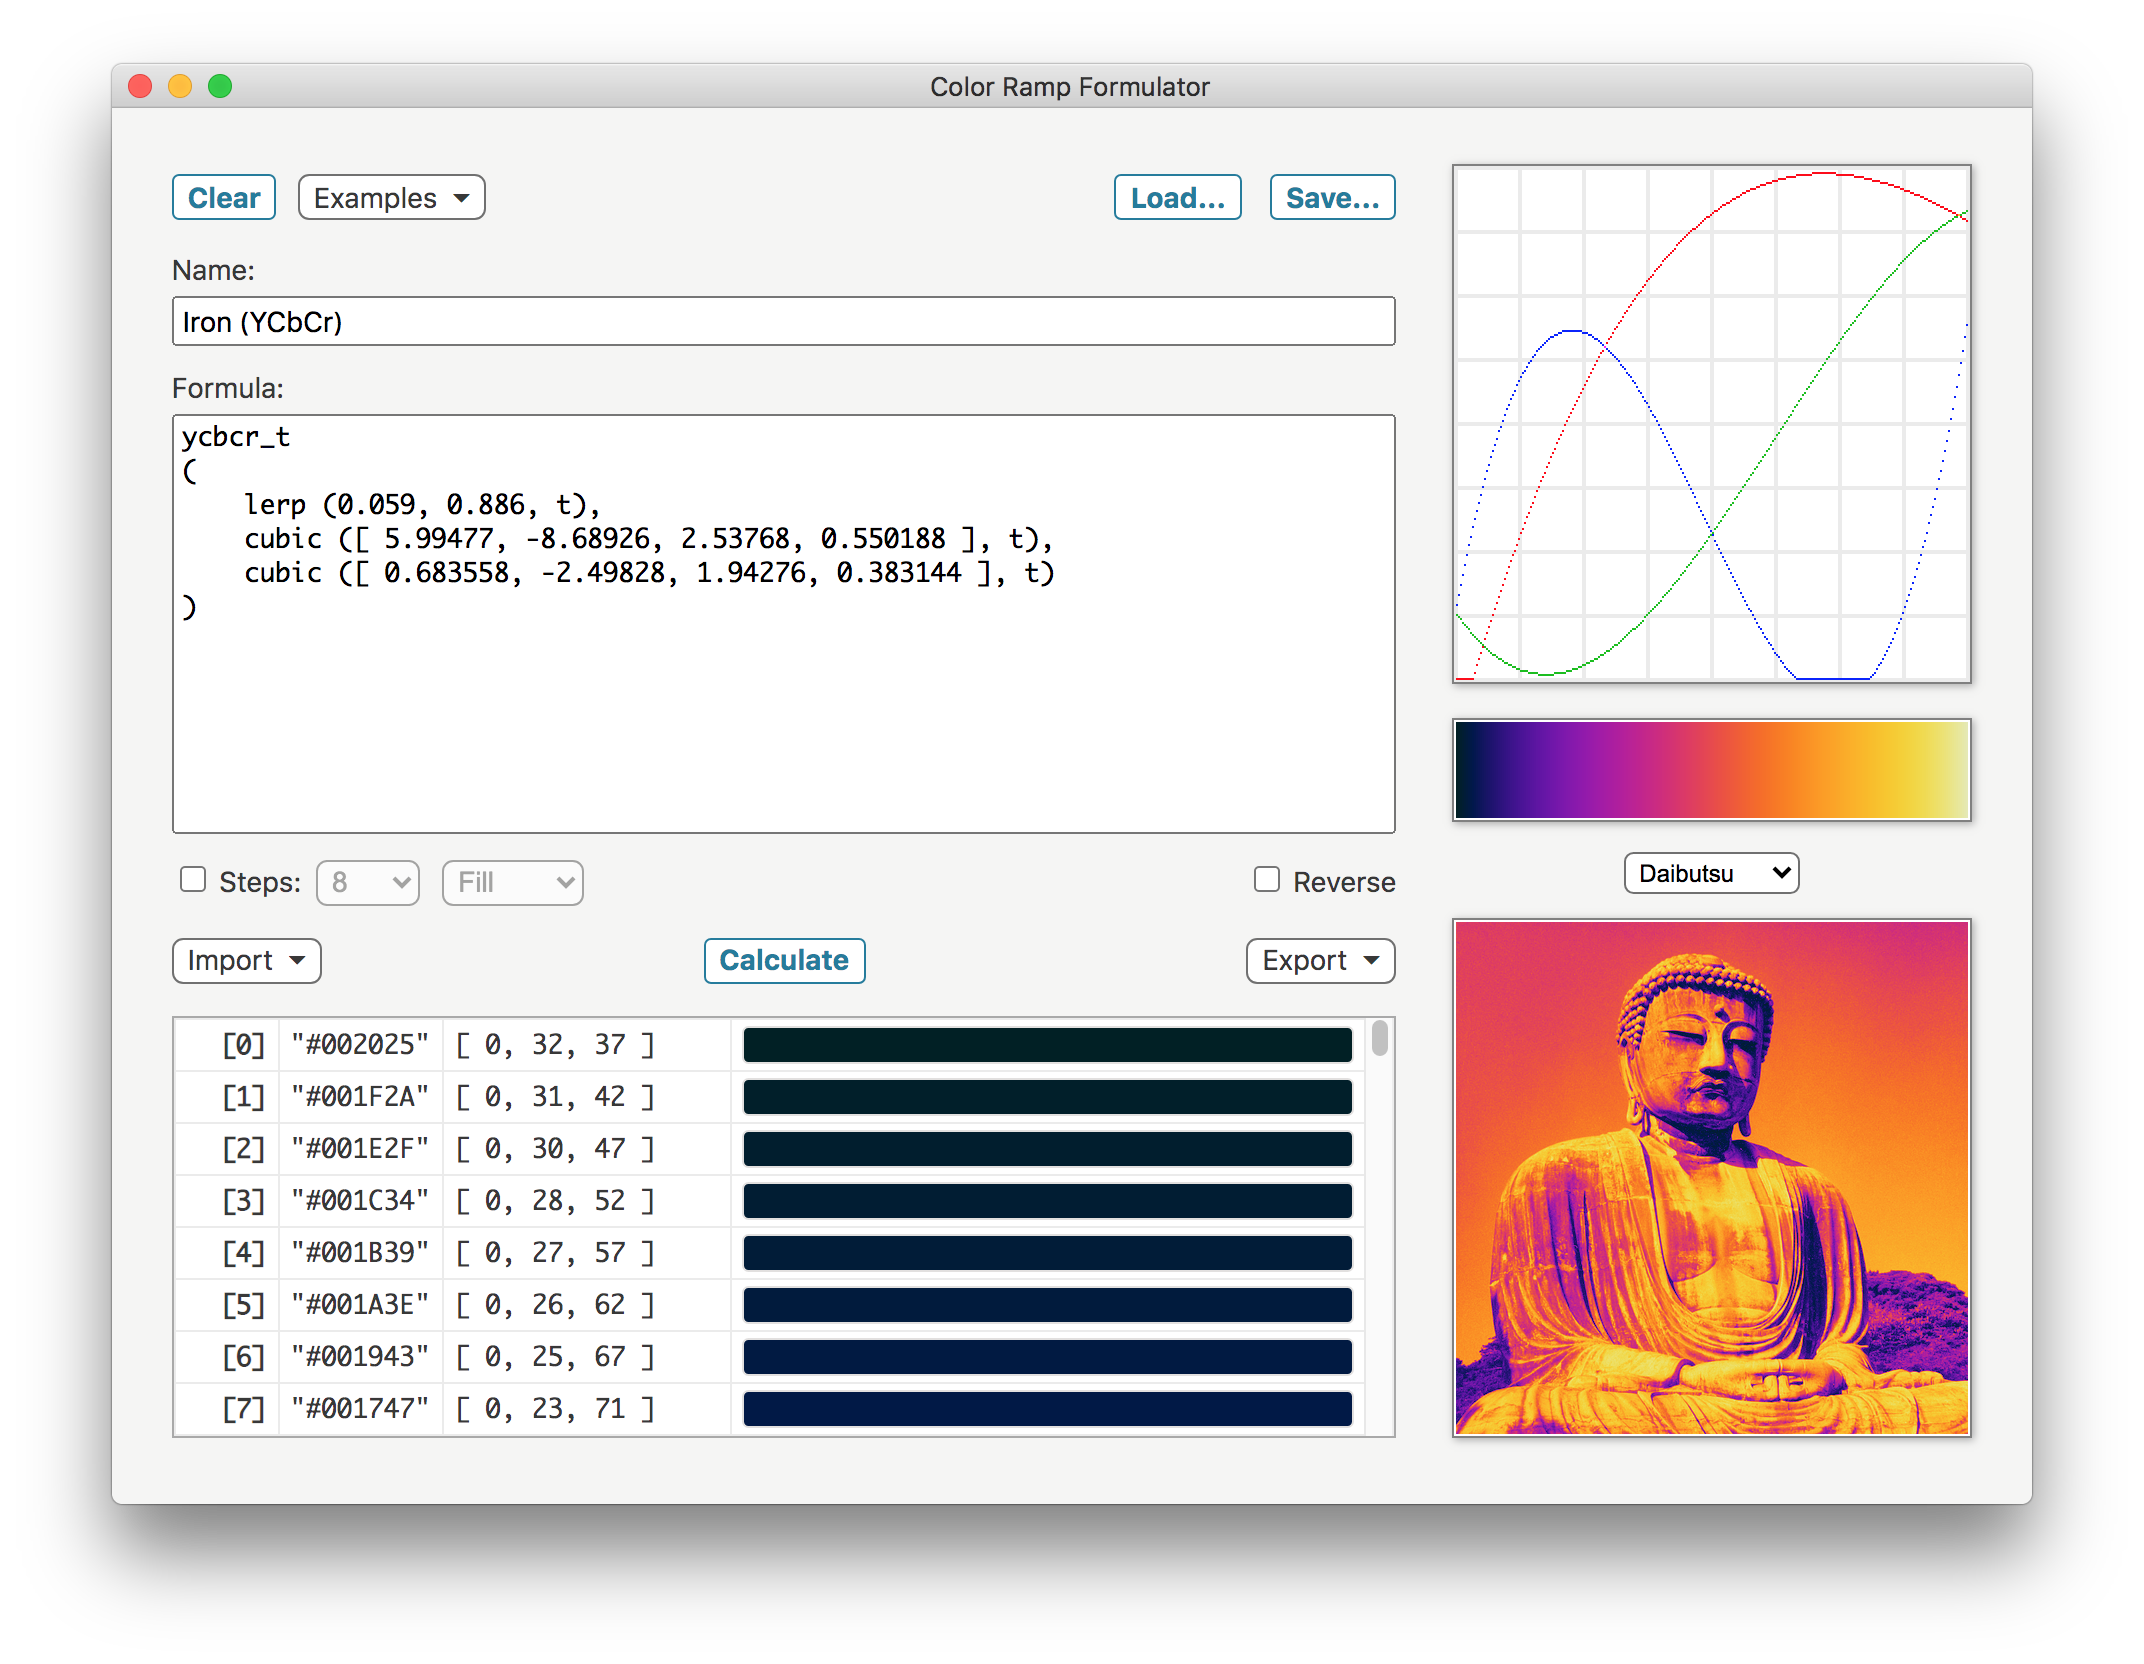 Color Ramp Formulator (Daibutsu) screenshot